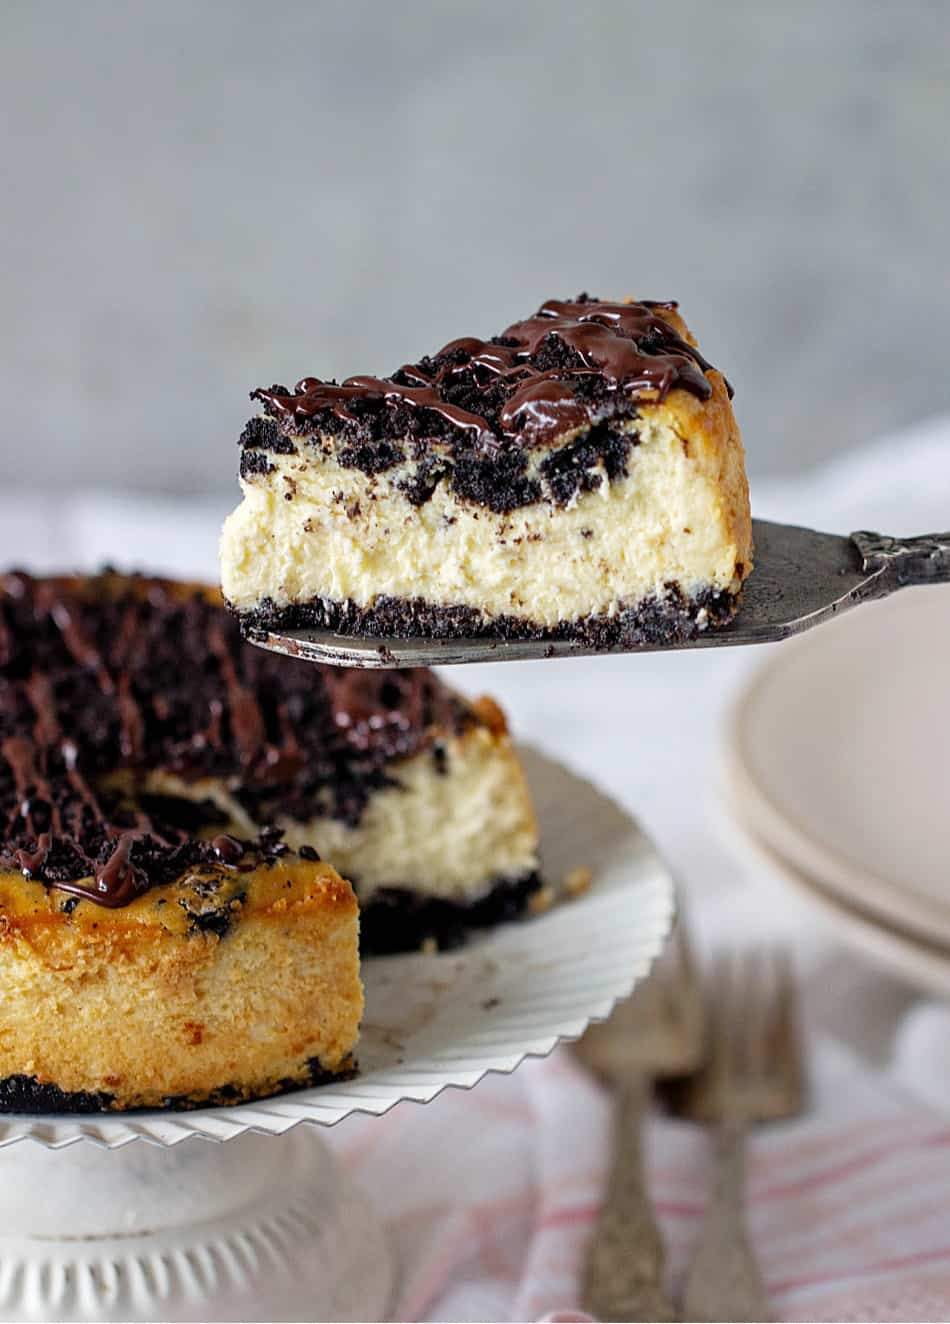 Oreo cheesecake on white cake stand, slice on cake server, forks and plates on background